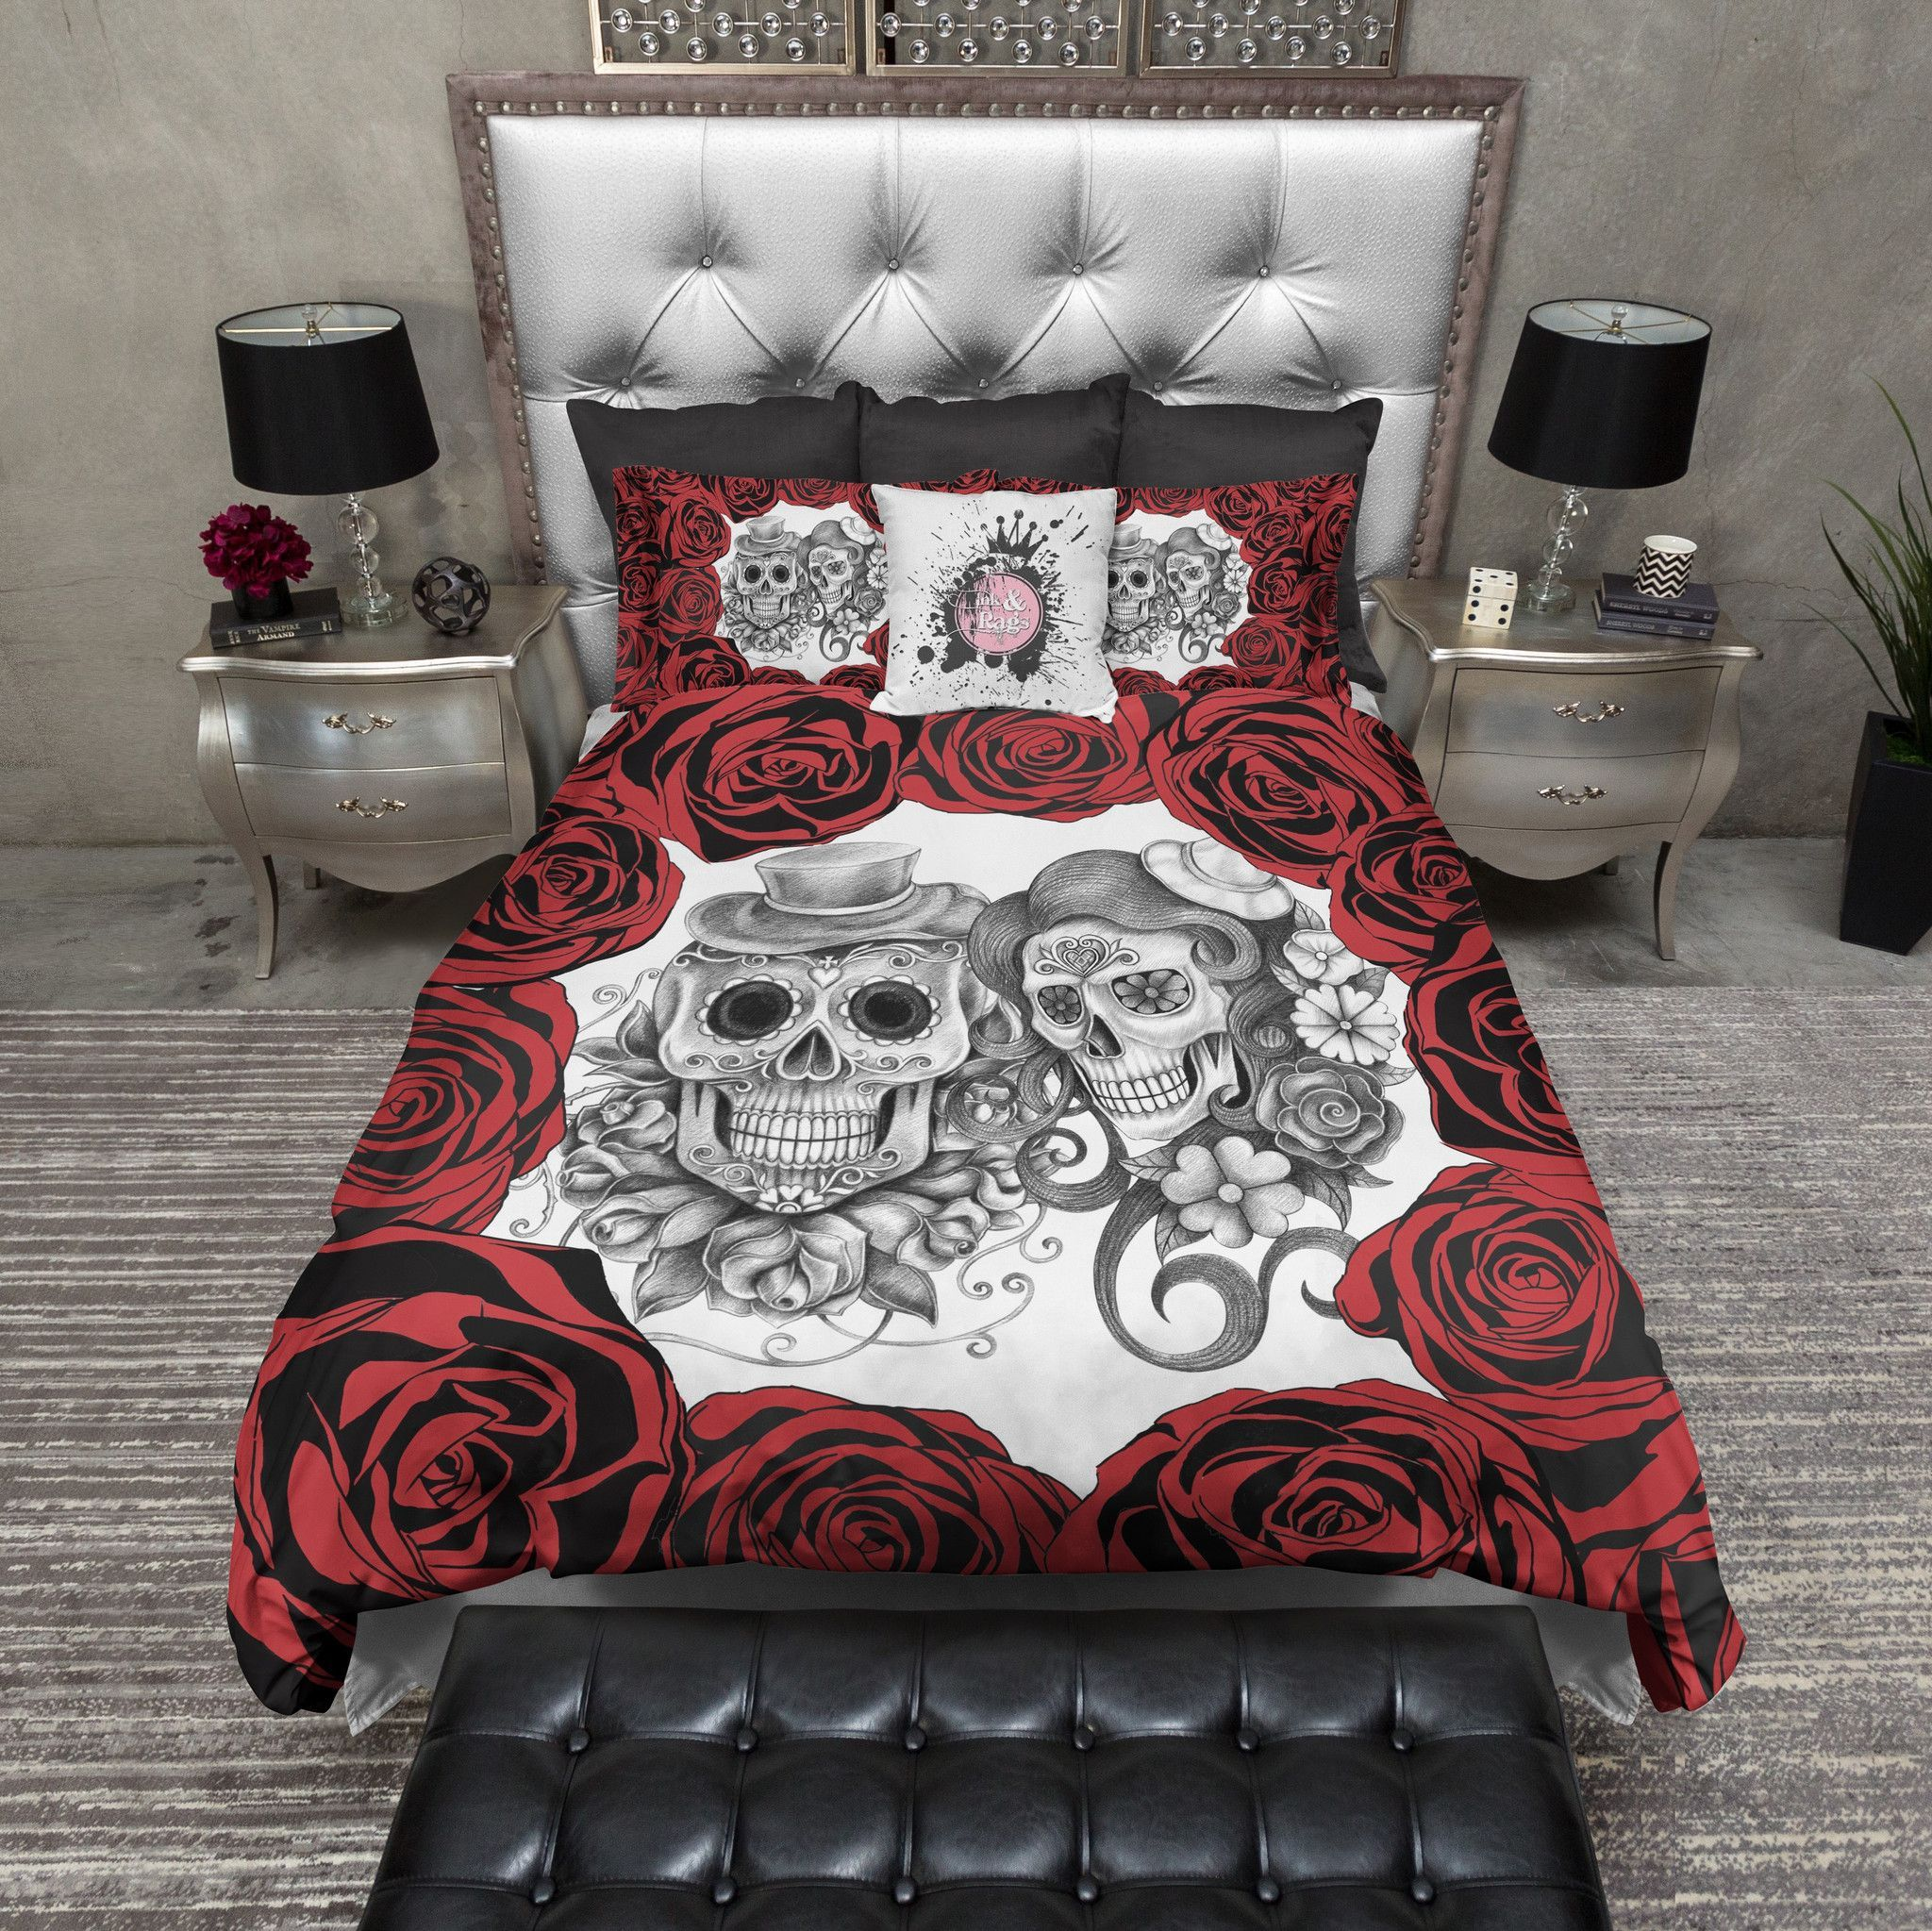 Red Rose Pencil Sketch Sugar Skull Bedding | Duvet bedding sets ...